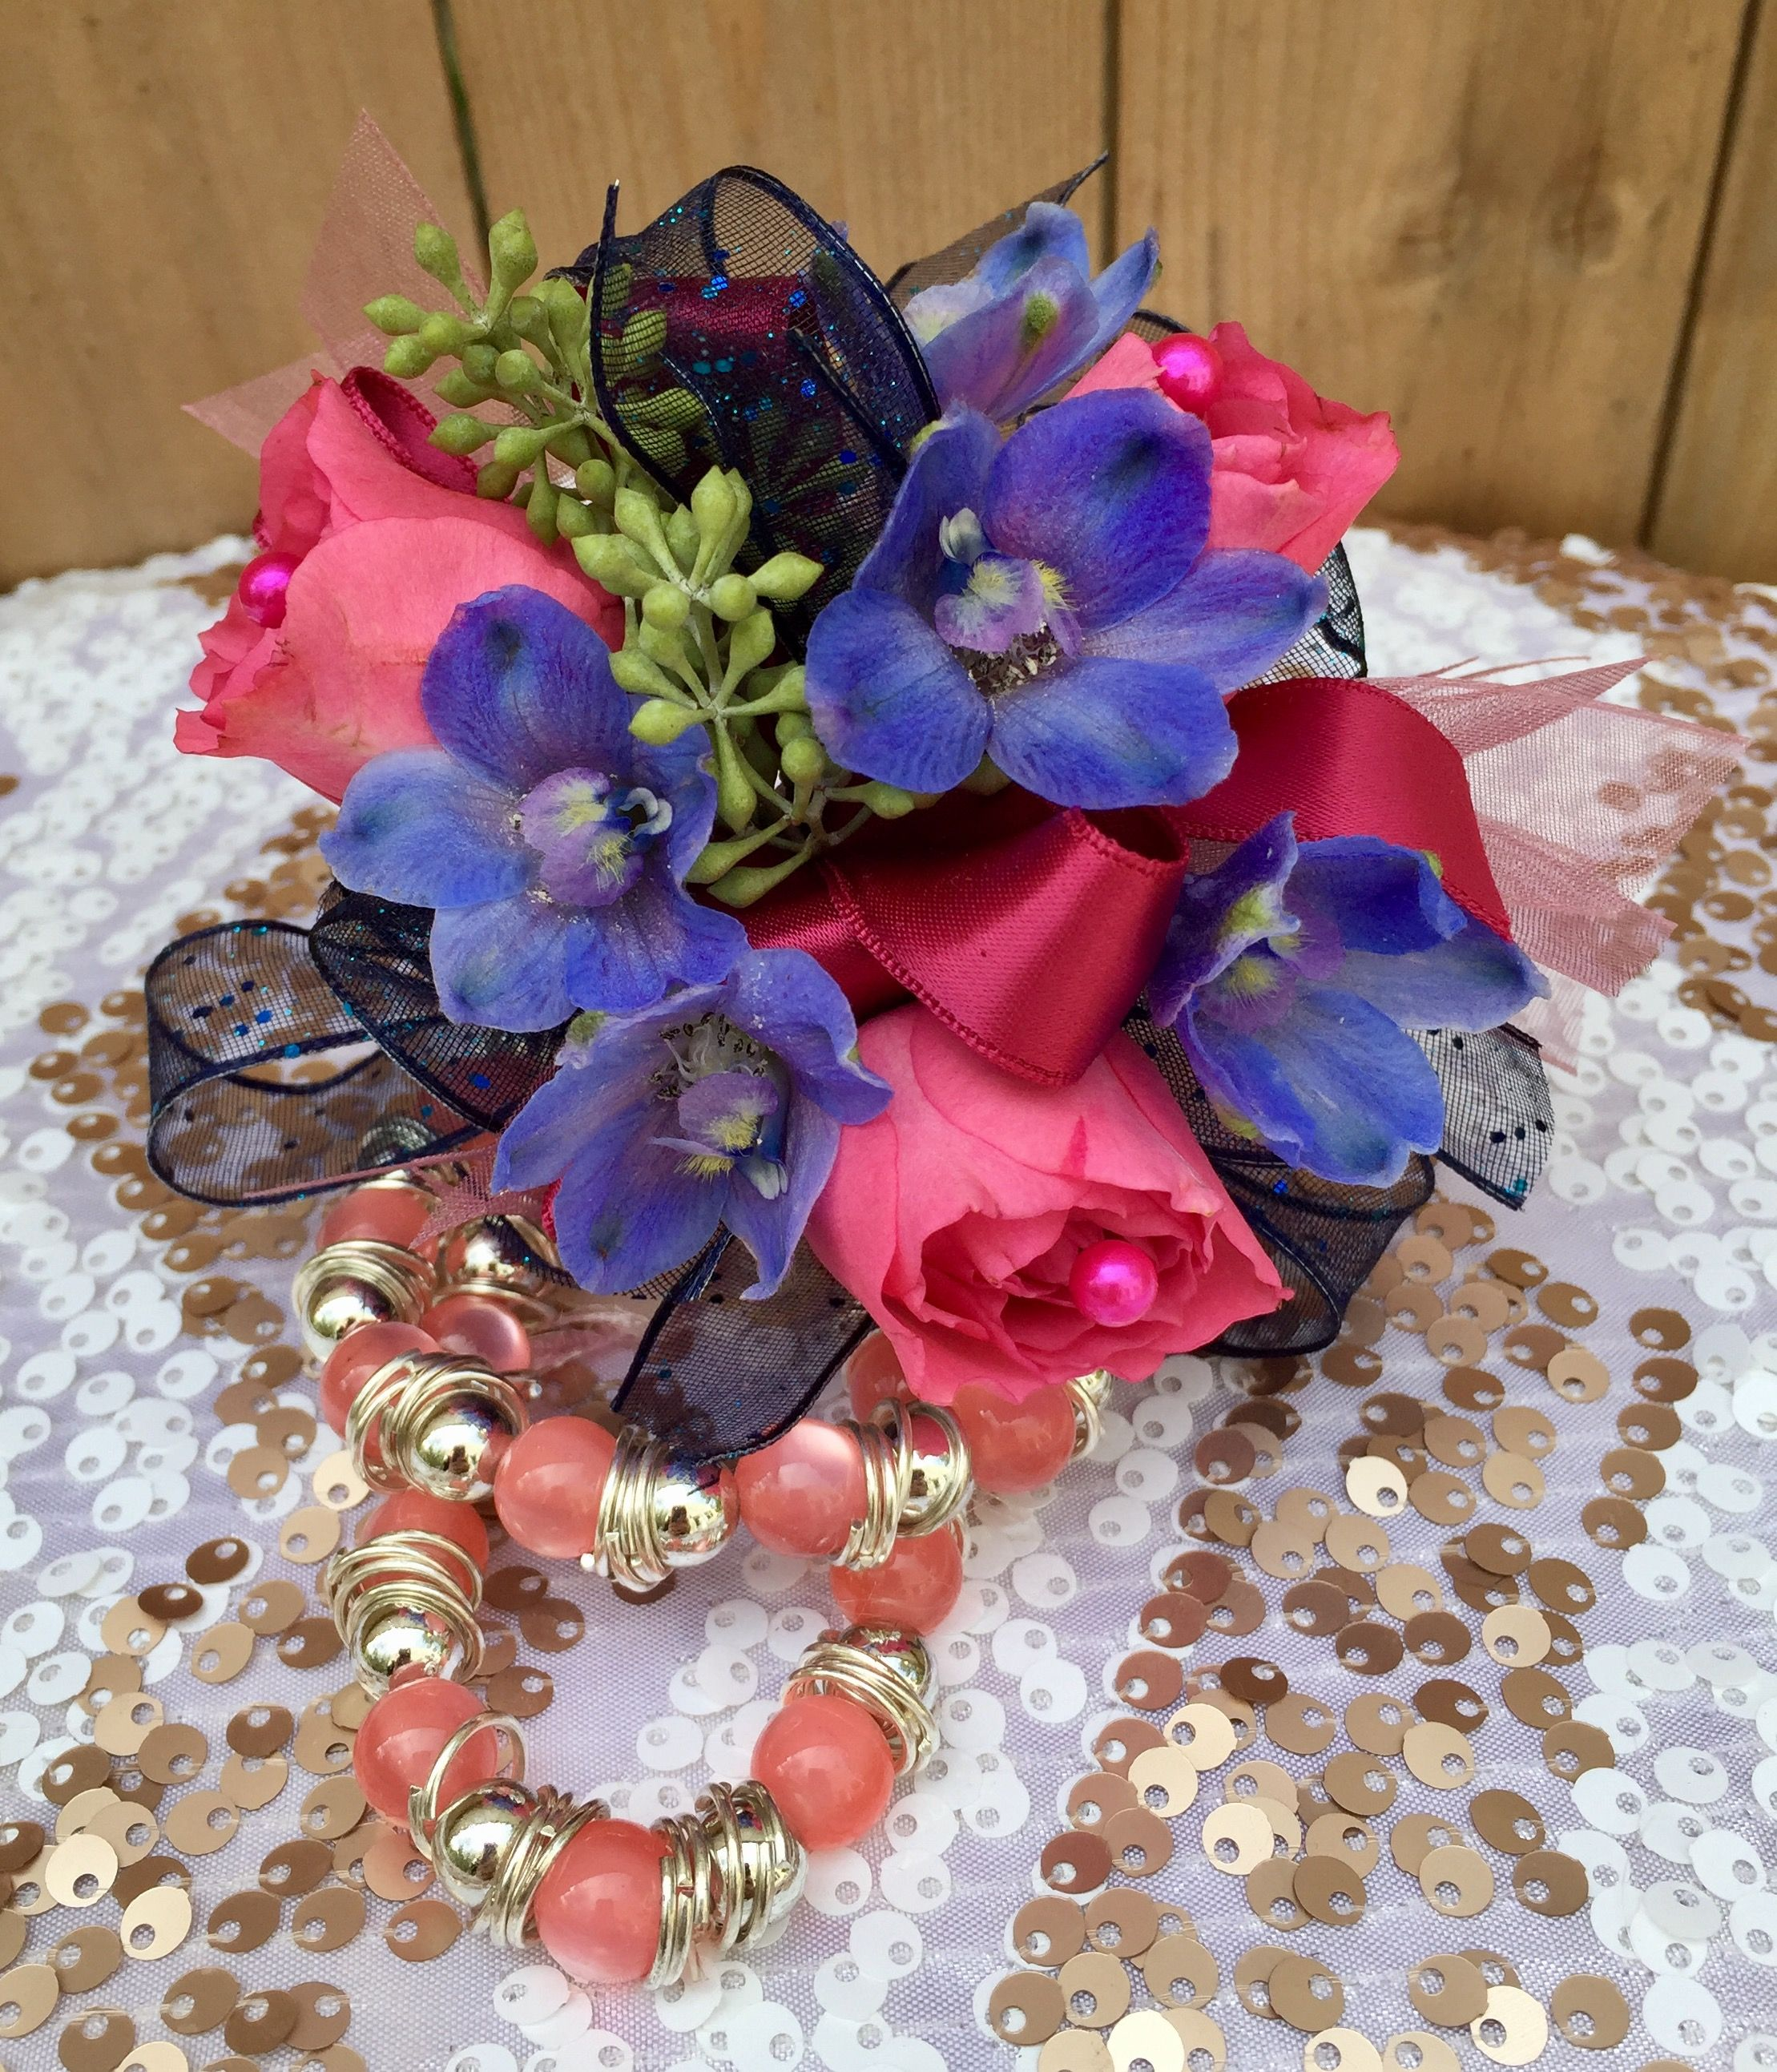 Pink and blue prom flowers prom corsage prom flowers prom trends pink and blue prom flowers prom corsage prom flowers prom trends izmirmasajfo Gallery